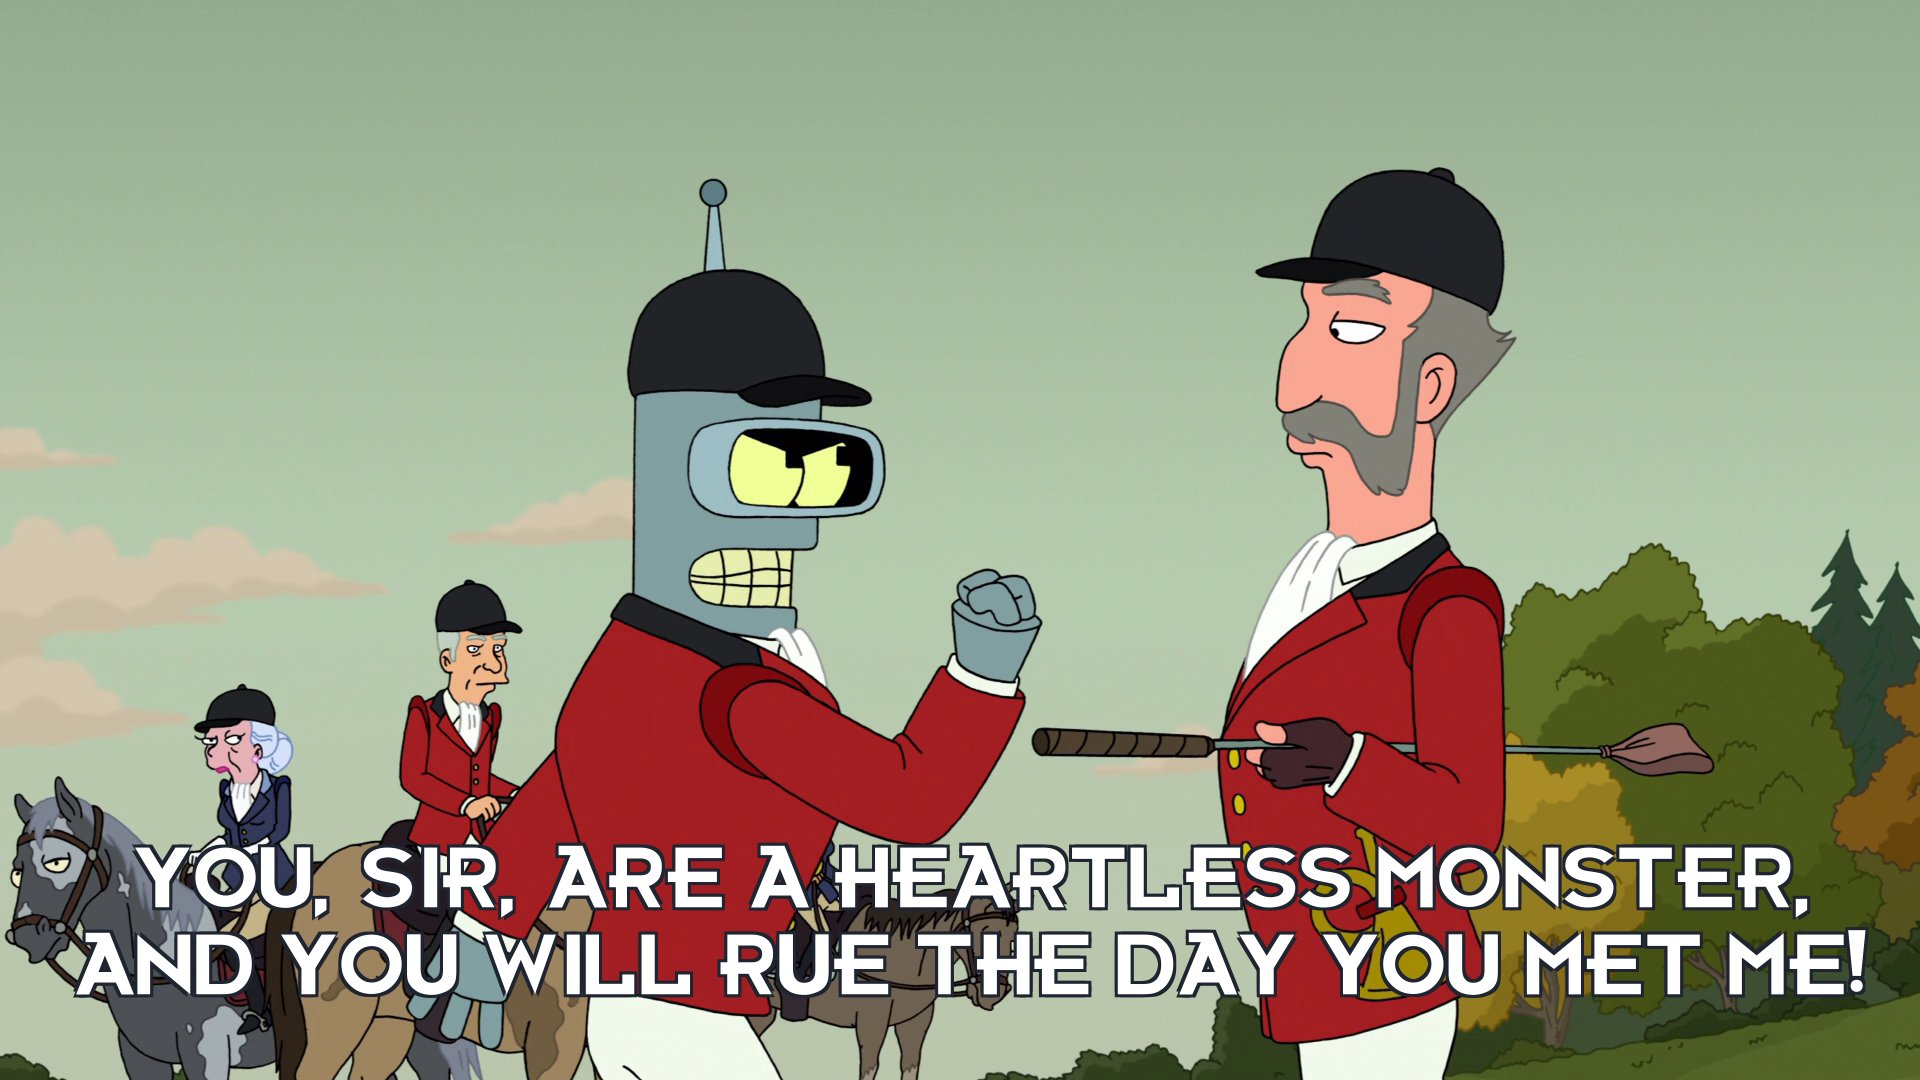 Bender Bending Rodriguez: You, sir, are a heartless monster, and you will rue the day you met me!